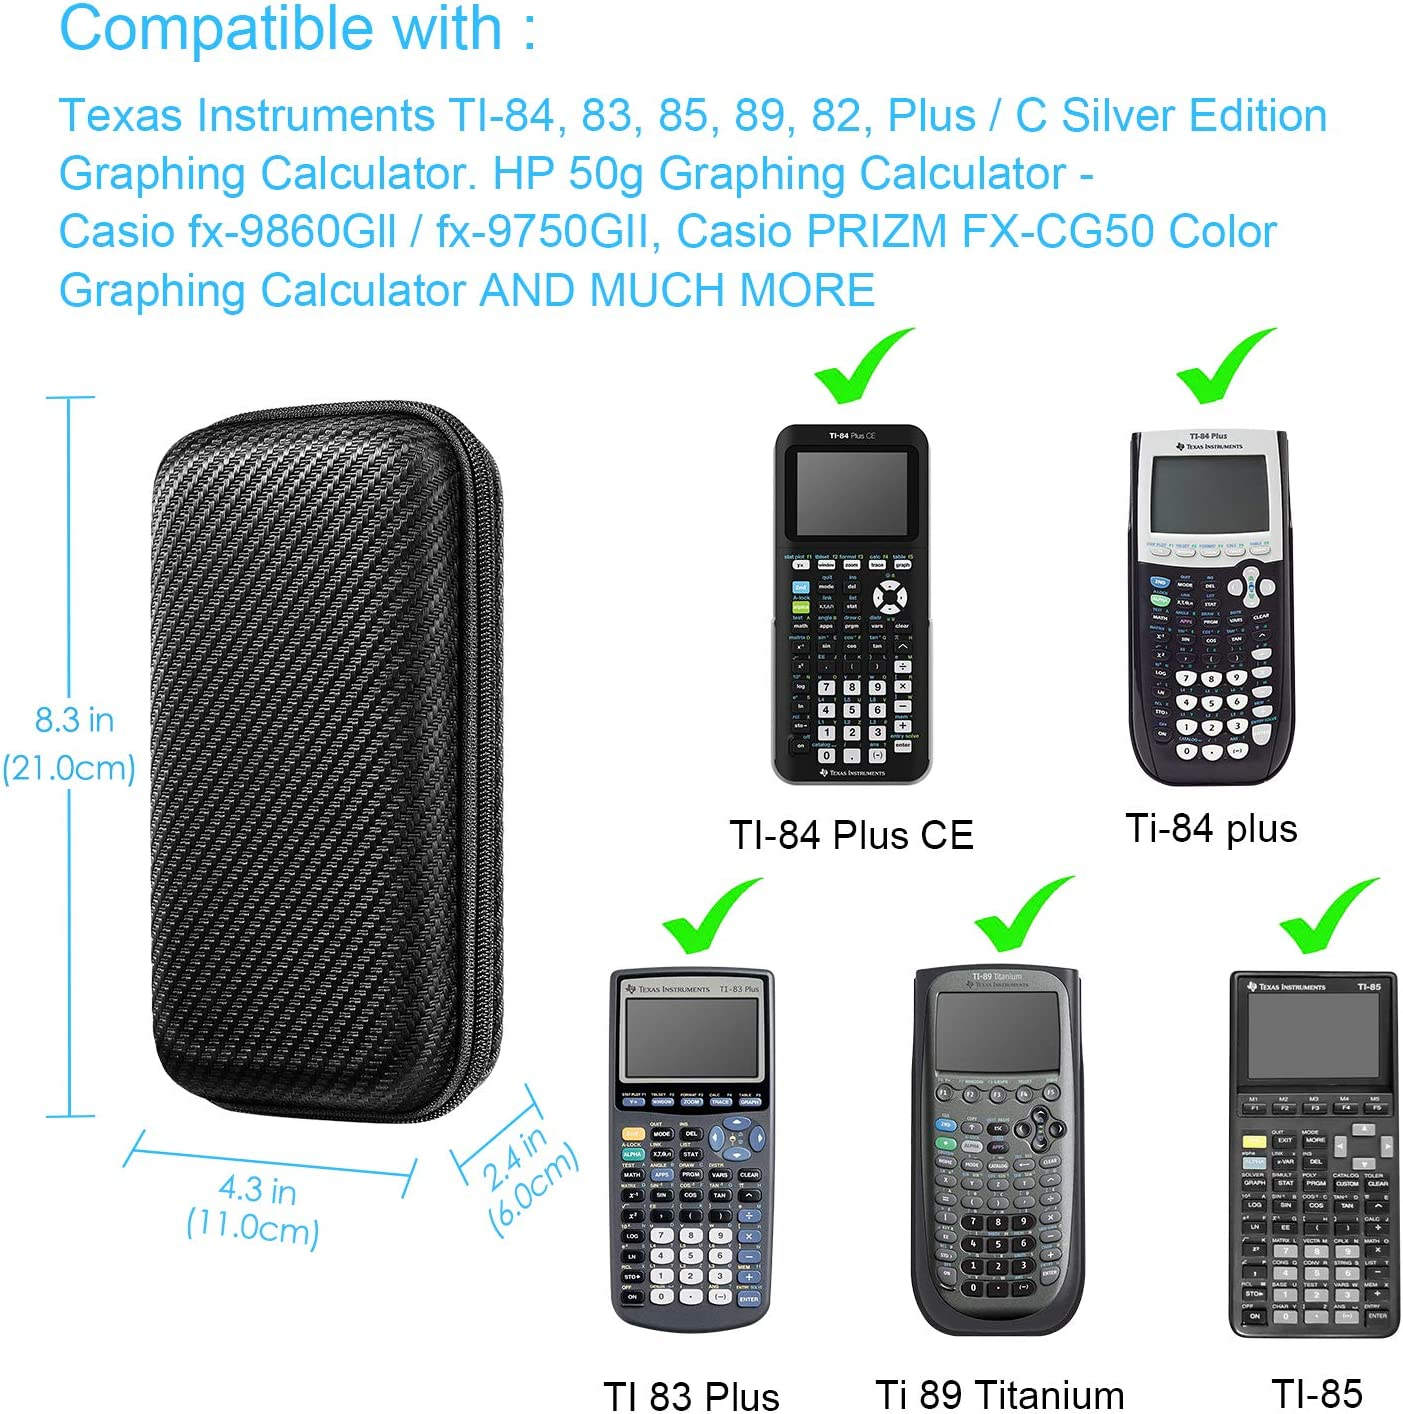 Black Graphing Calculator Carrying Case for Texas Instruments TI-84 Plus CE Fintie Hard EVA Shockproof Travel Protective Box